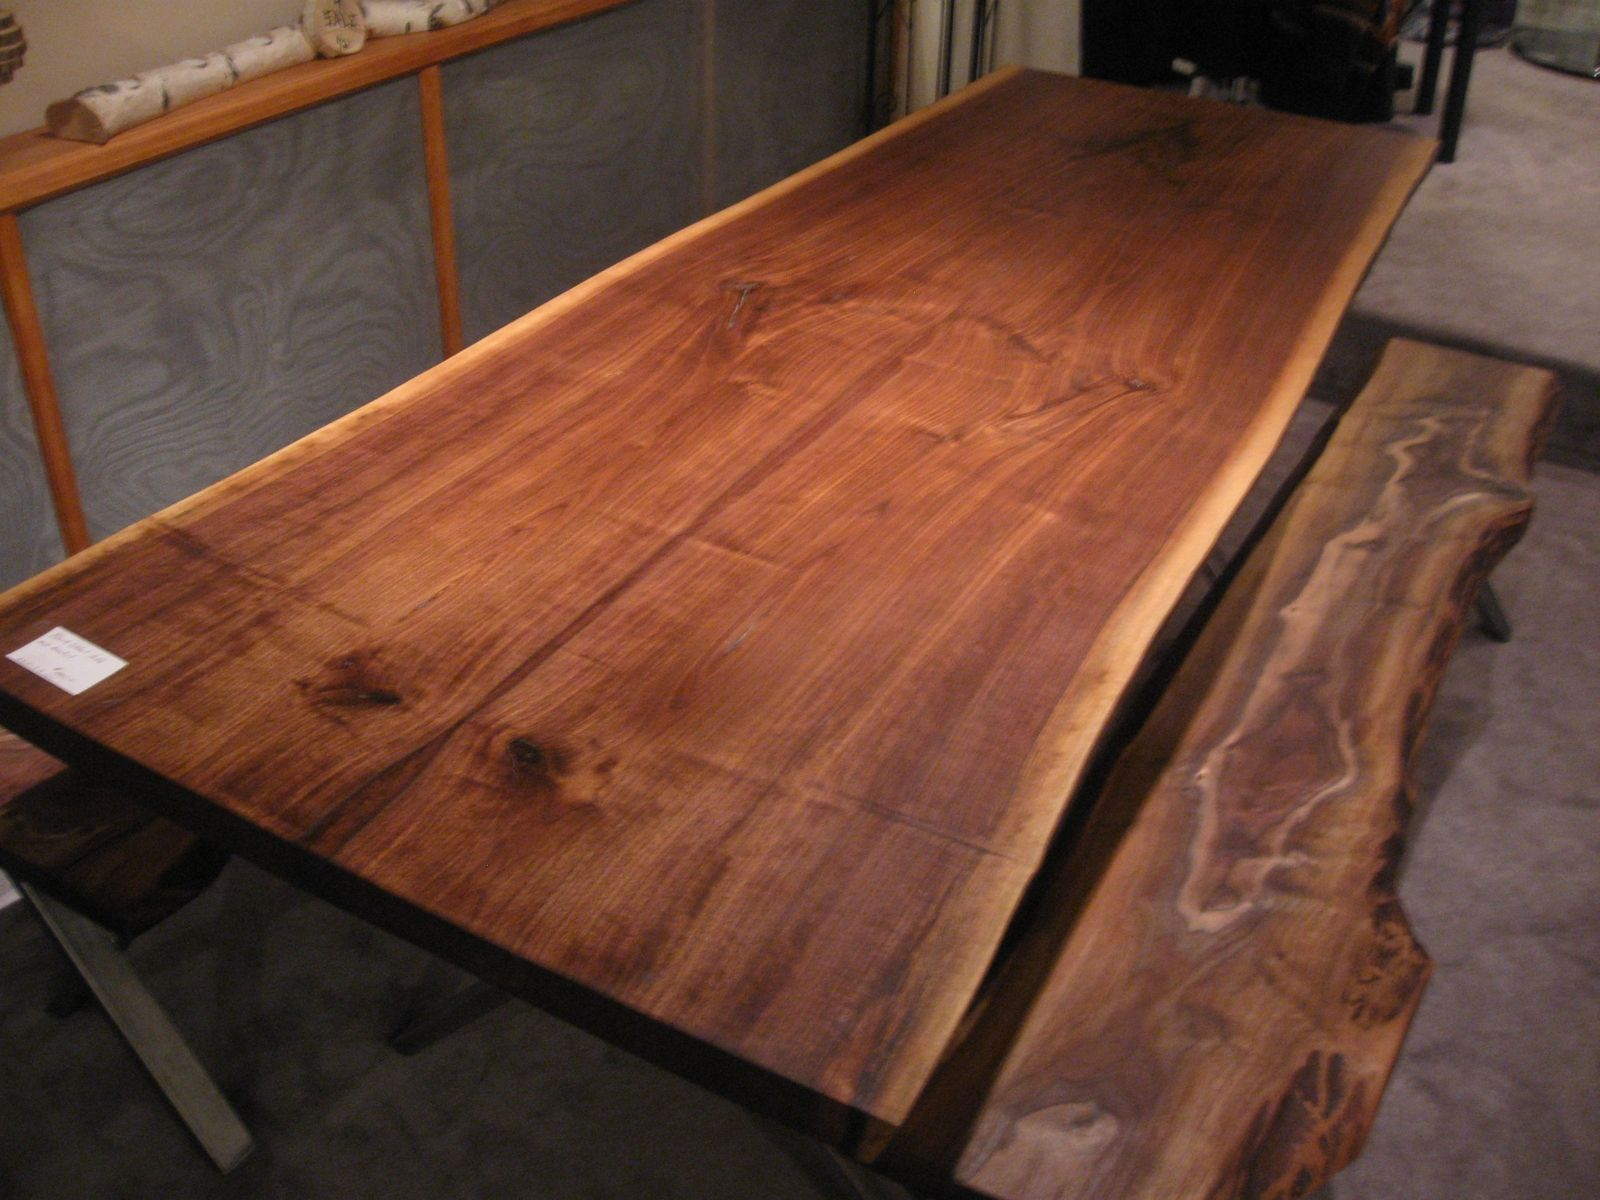 Walnut Slab Dining Room Table